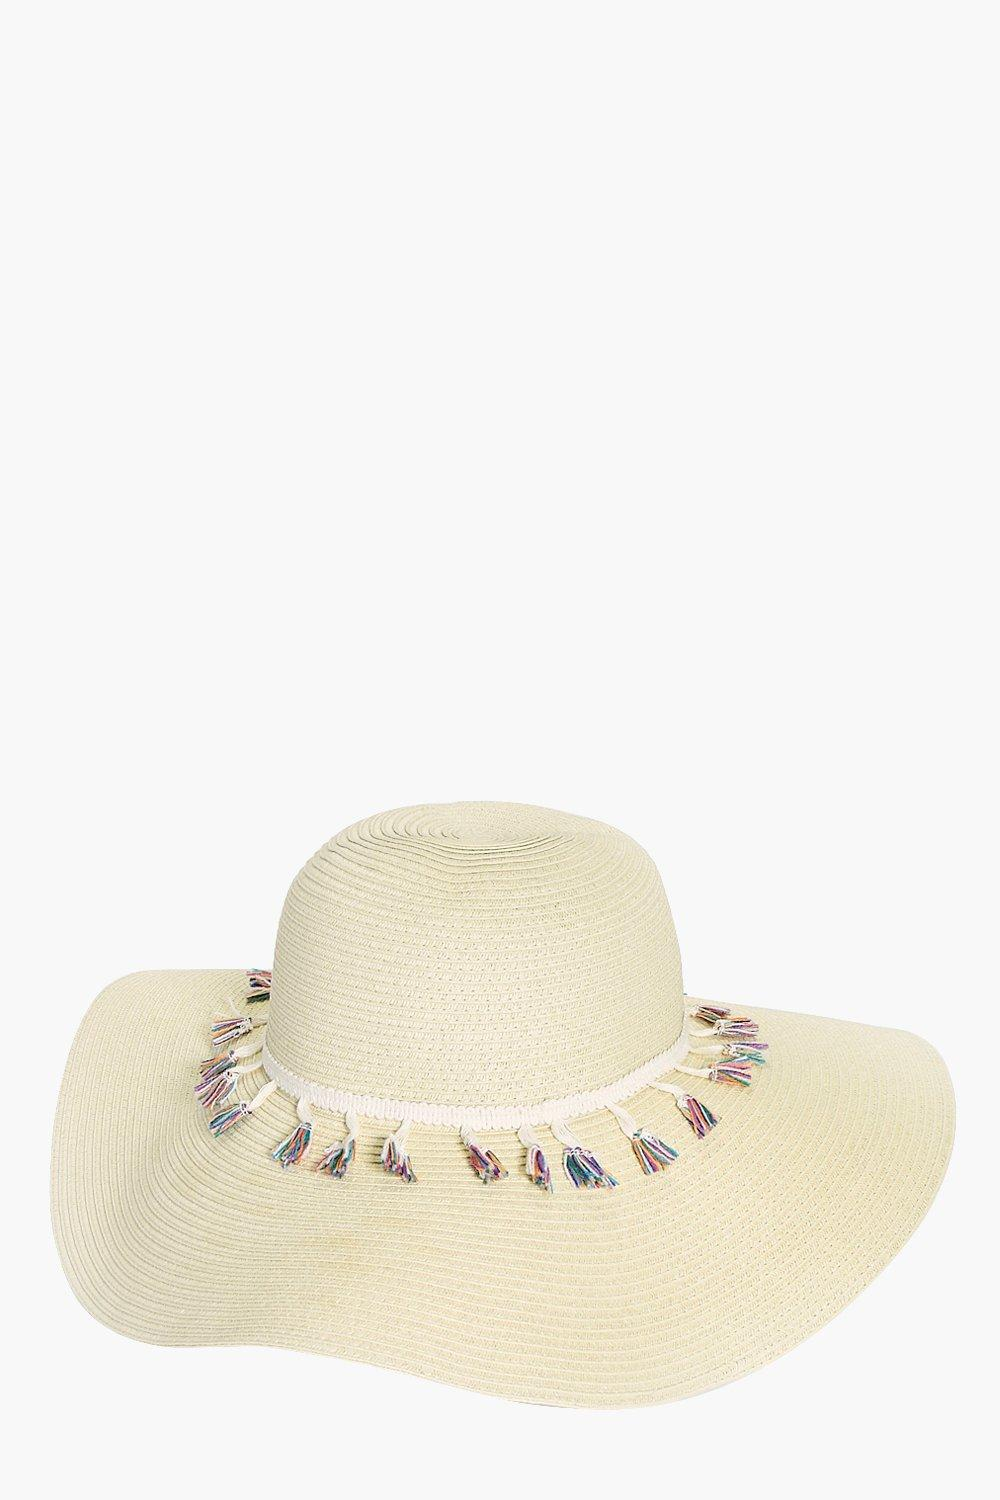 Fringe Trim Floppy Hat - natural - Kate Fringe Tri